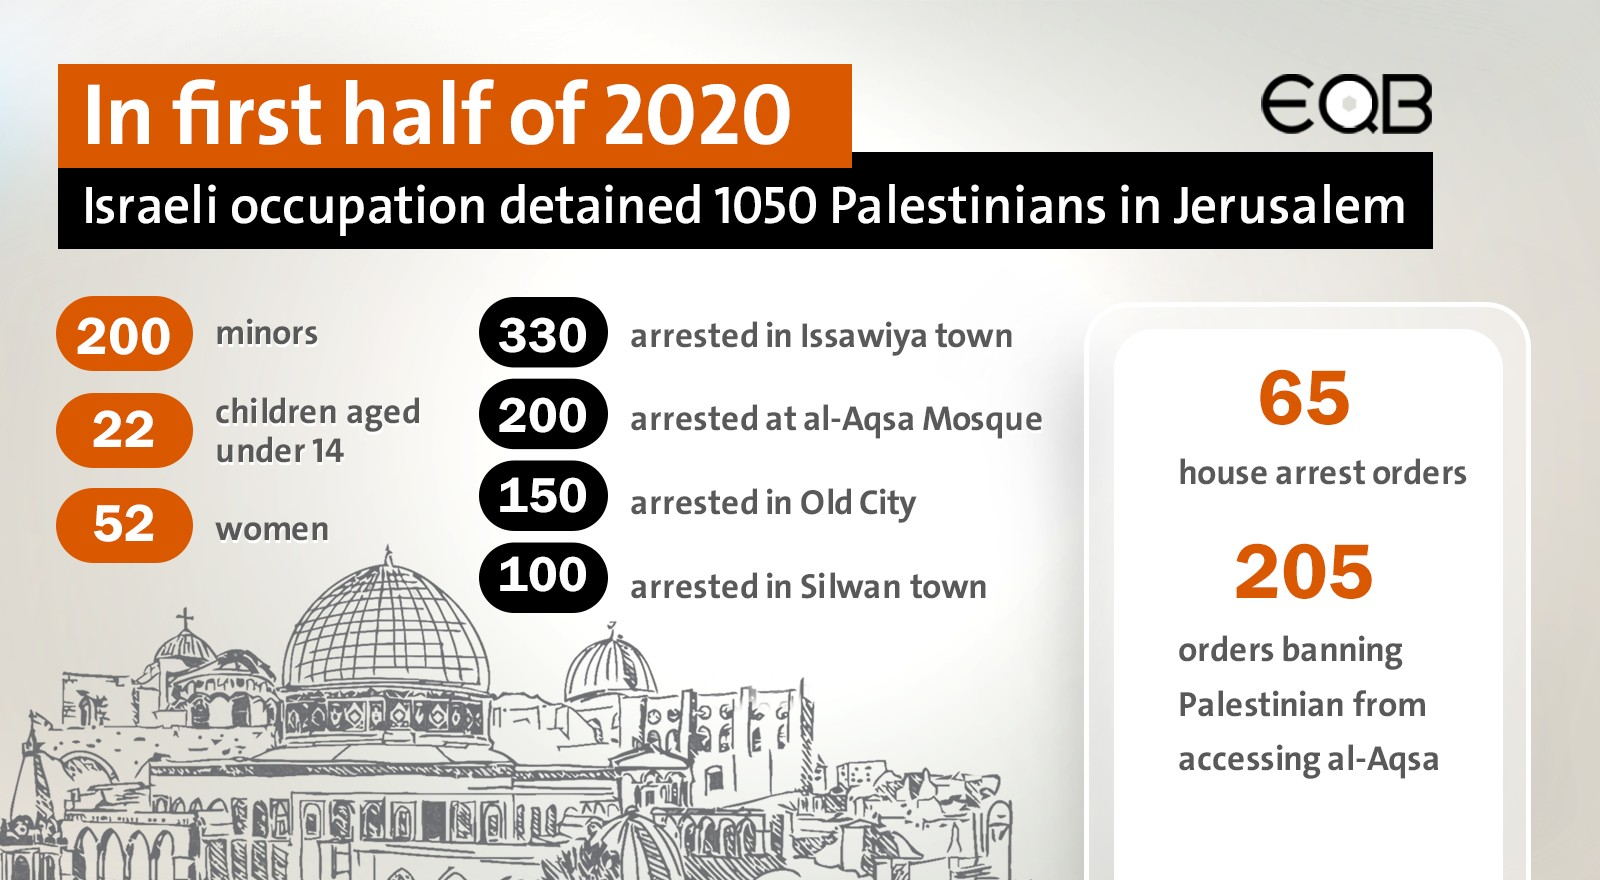 In first half of 2020  Israeli occupation detained 1050 Palestinians in Jerusalem